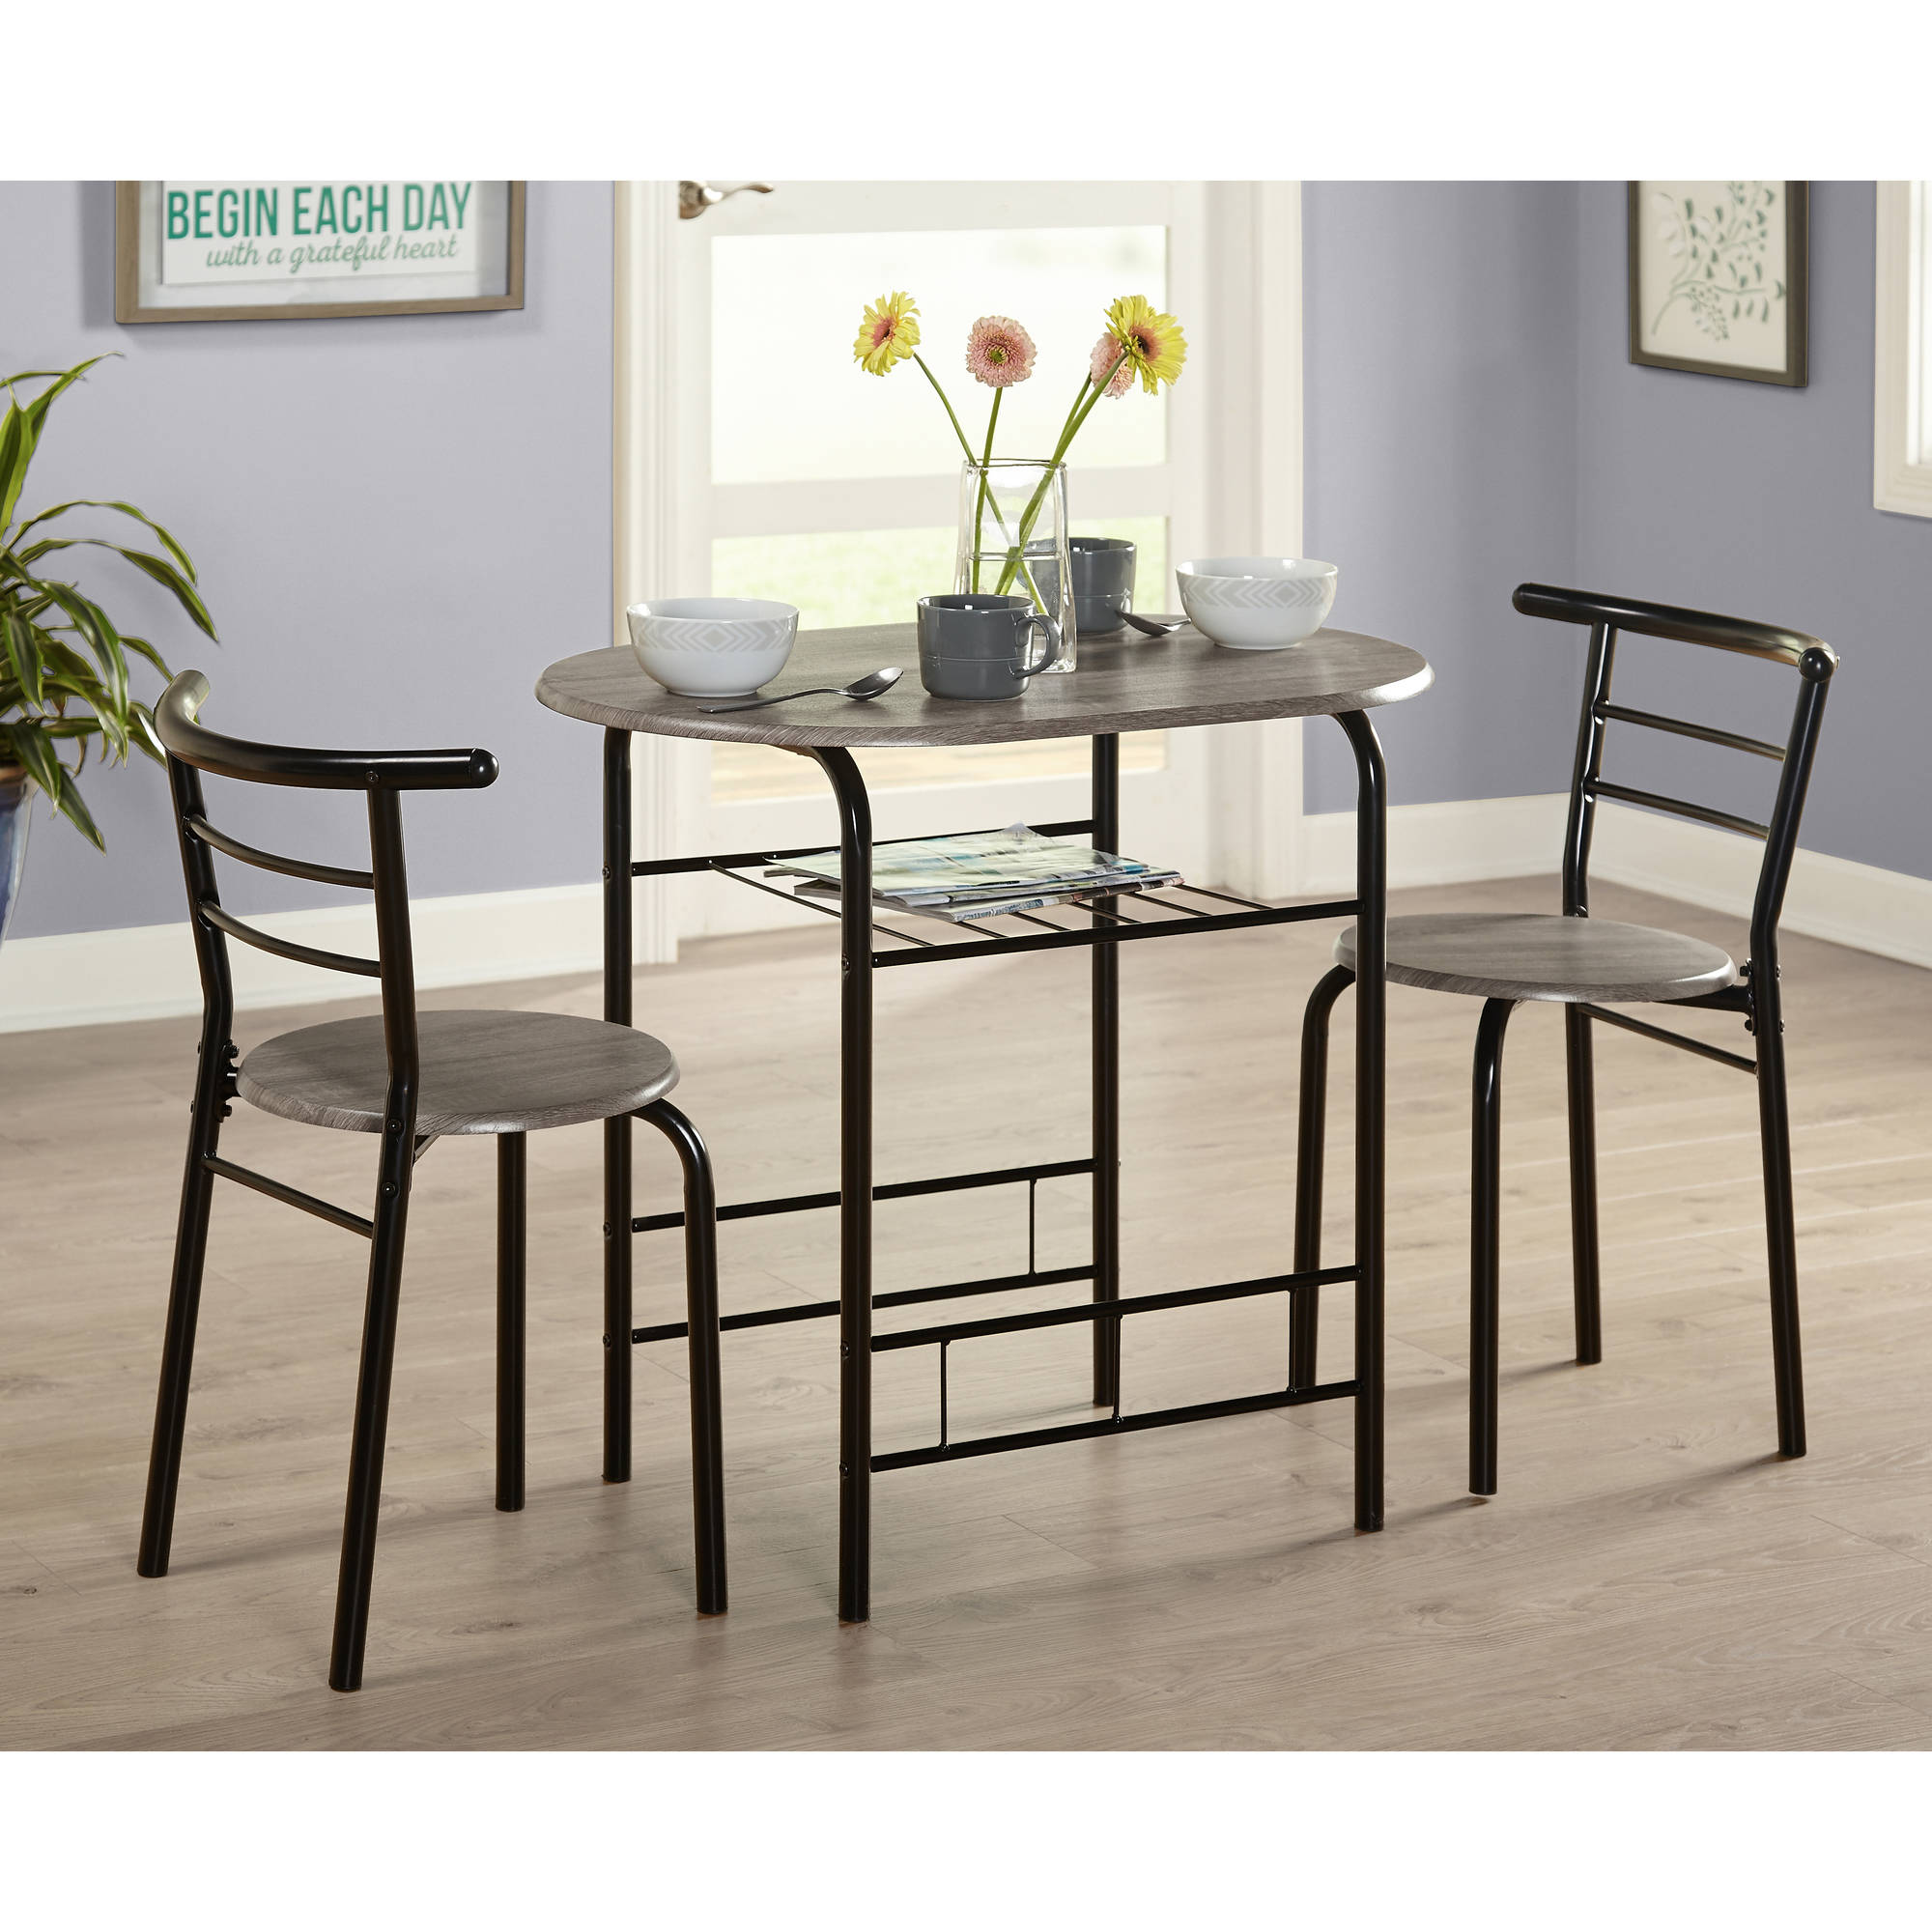 3 Piece Bistro Set Multiple Colors